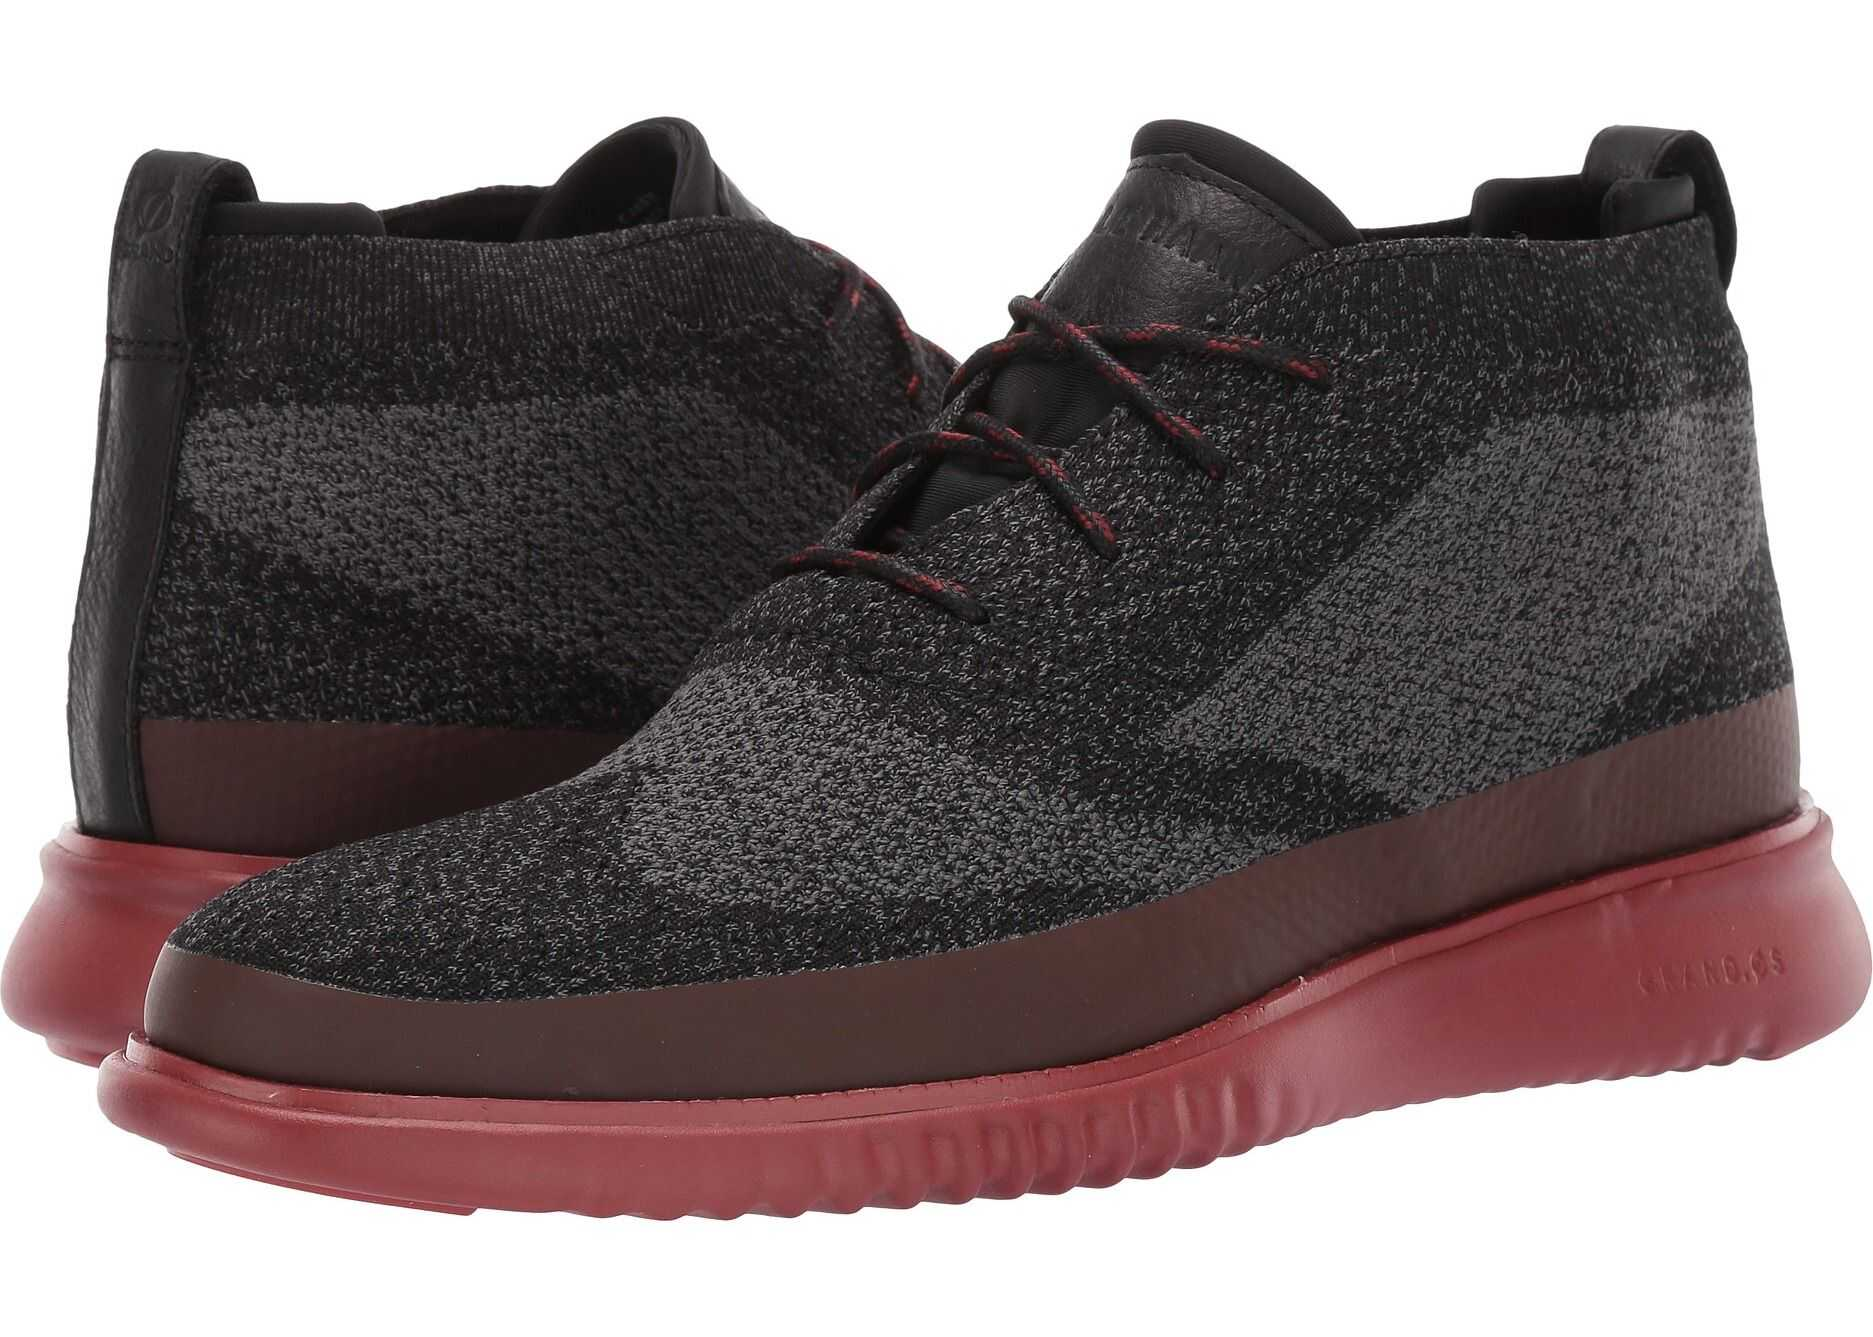 Cole Haan 2.Zerogrand Stitchlite Chukka Water Resistant Black/Magnet Knit/Red Ochre